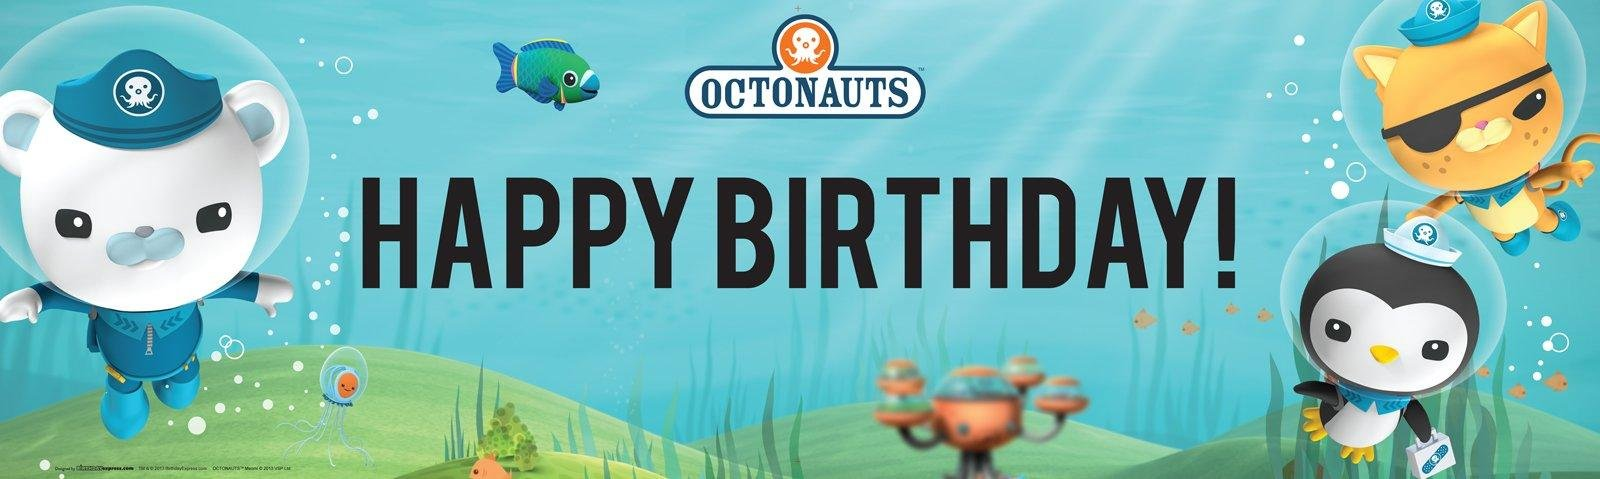 The Octonauts Party Supplies - Vinyl Birthday Banner 18'' x 61''